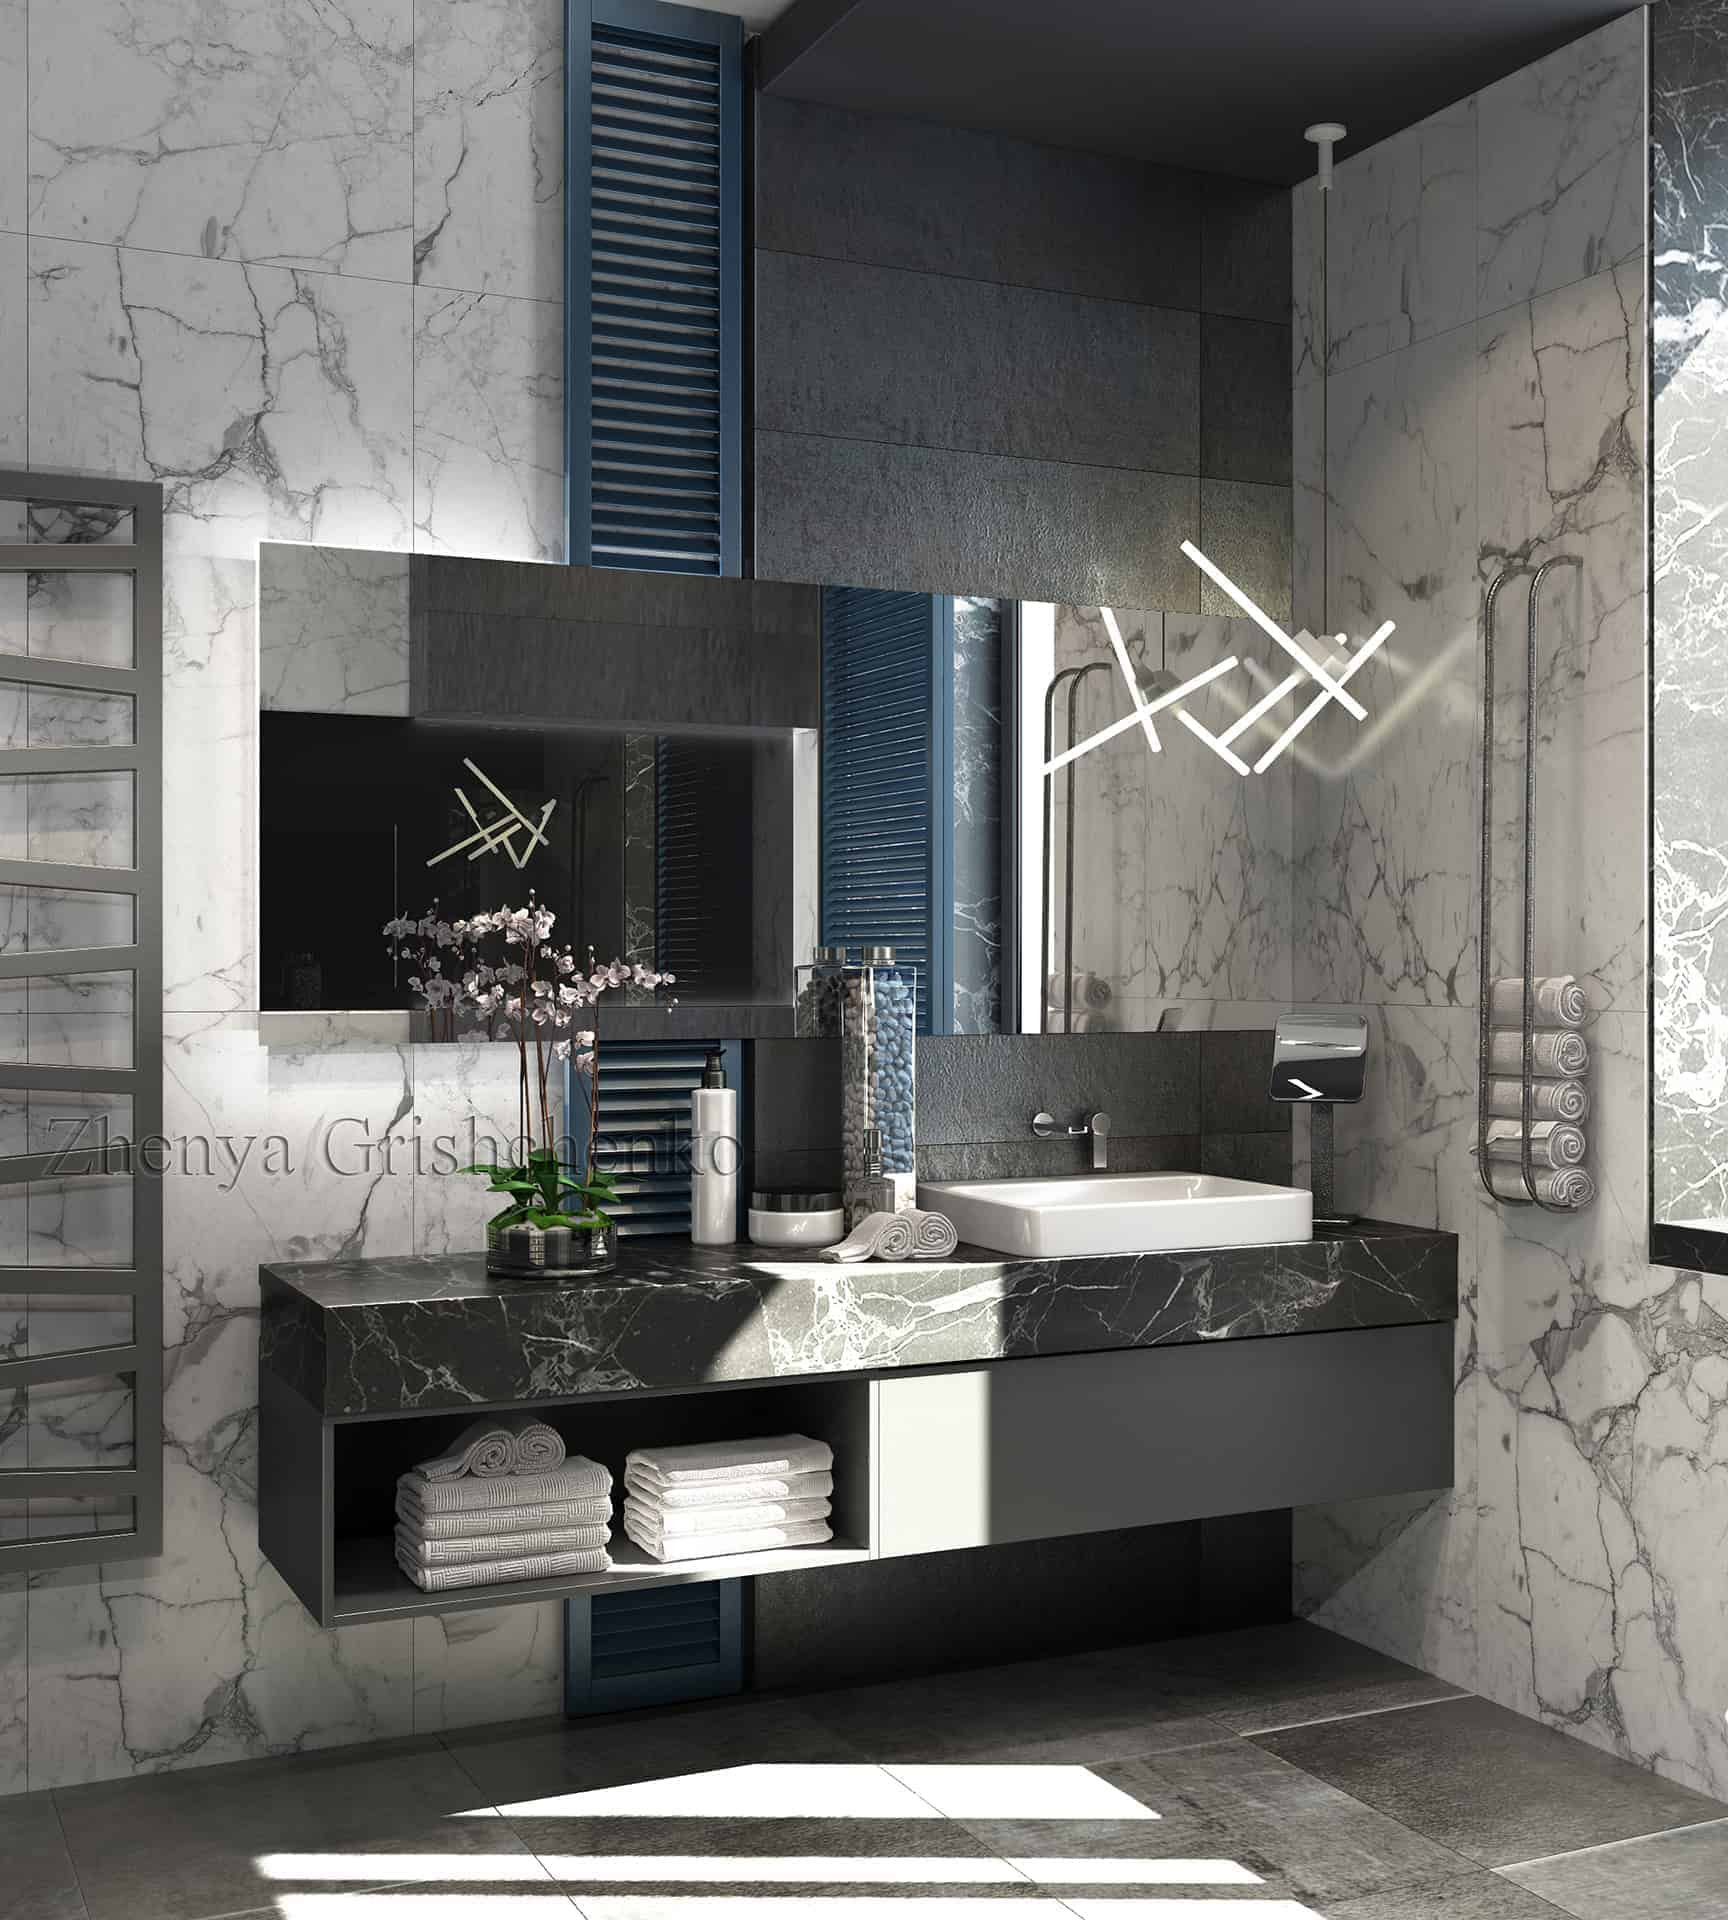 A Waterfall With Illumination Behind The Glass An Unusual Form Of Chandelier And White Marble Made This Project Favorite In Instagram